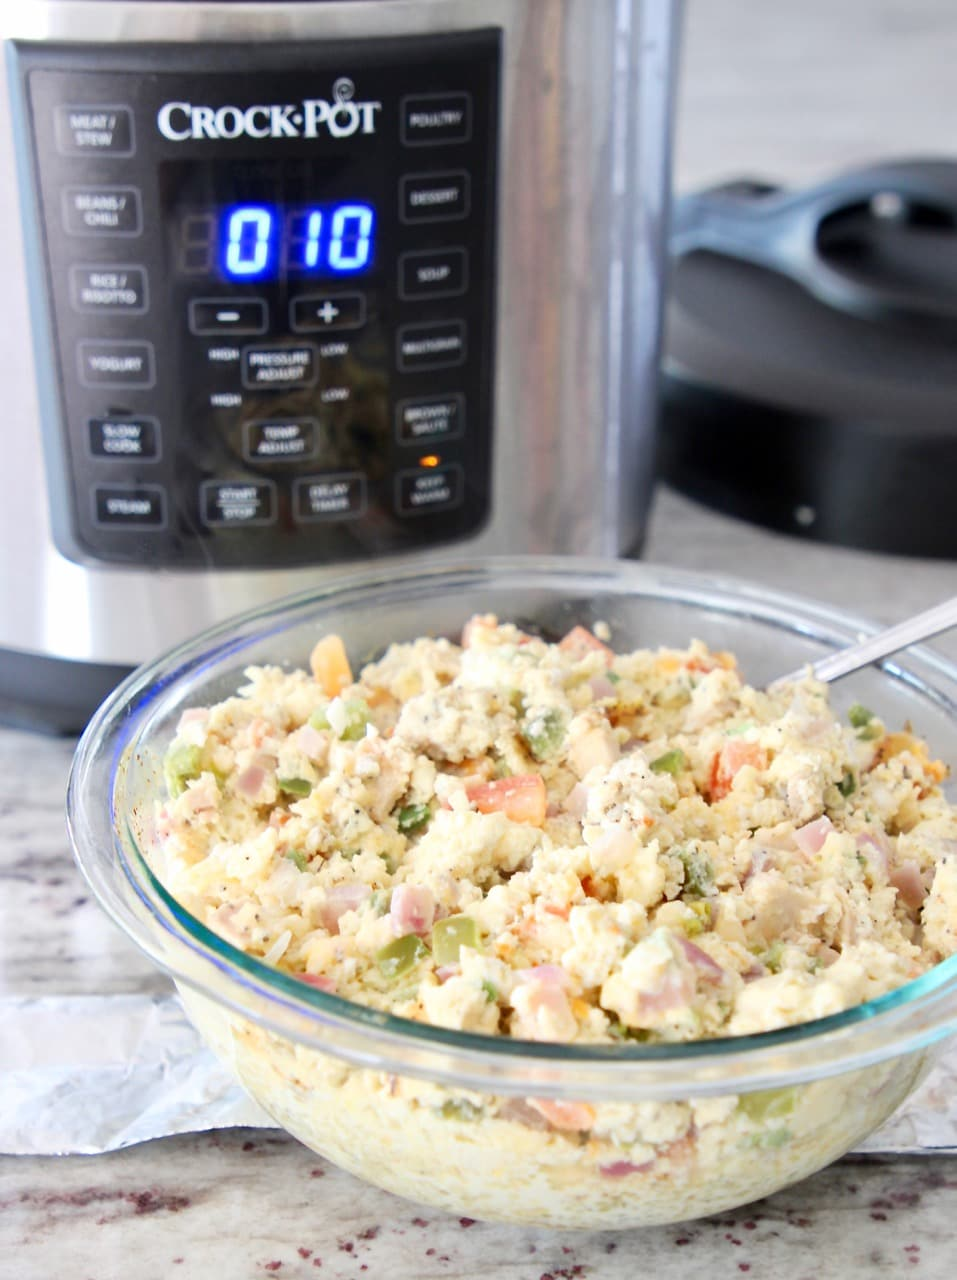 Scrambled eggs for breakfast tacos in bowl with Crock Pot pressure cooker